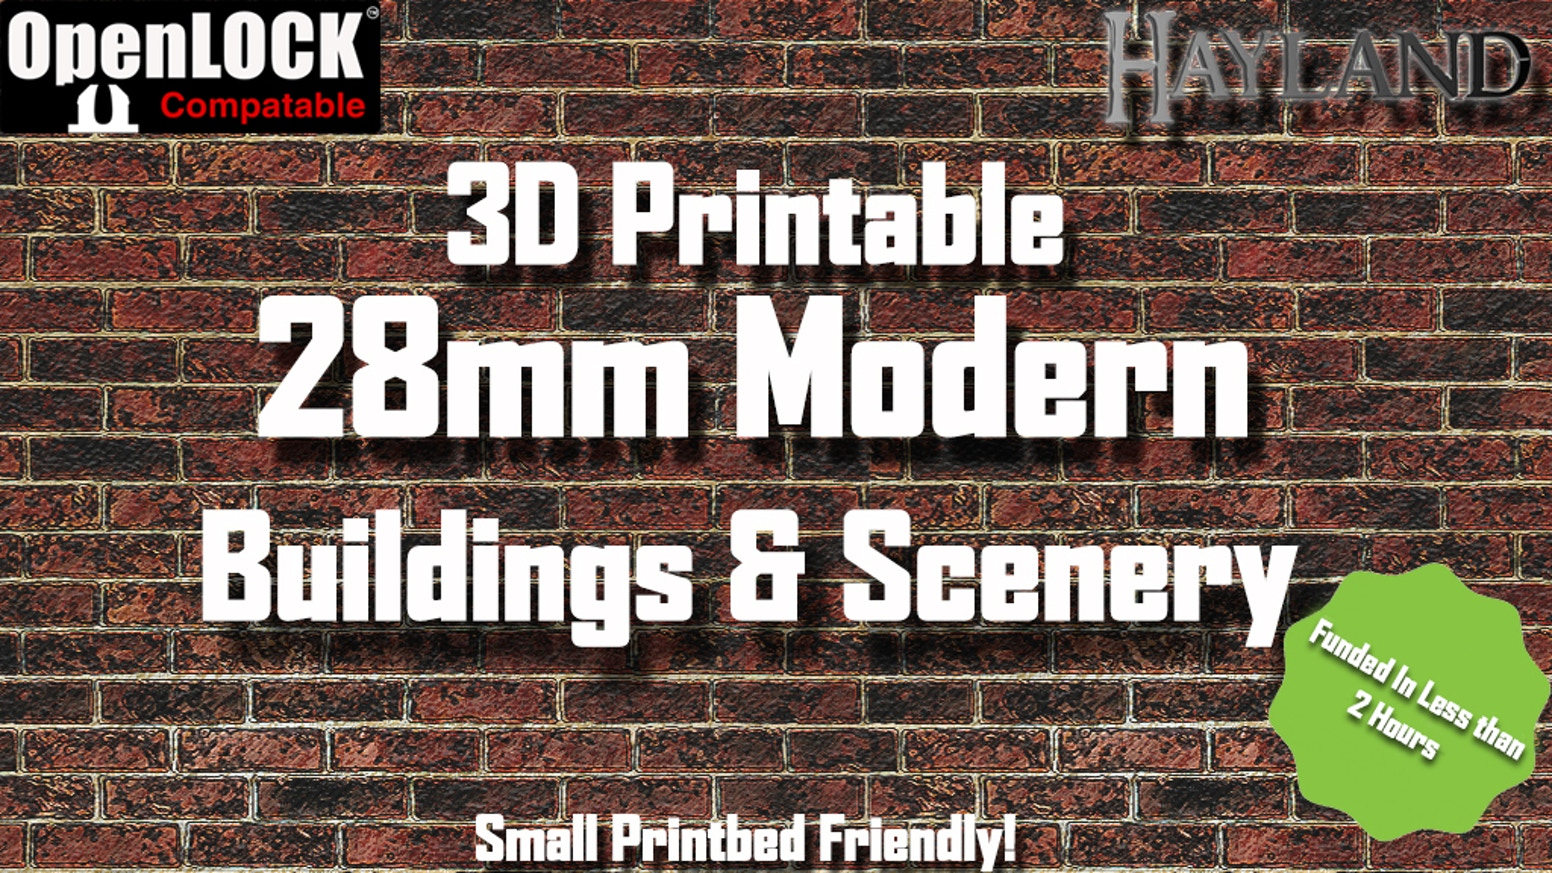 28mm Modular Modern Buildings & Scenery - STL - OpenLOCK for 3D Printing - Funded in less than 2 hours! - 3D Printable Files